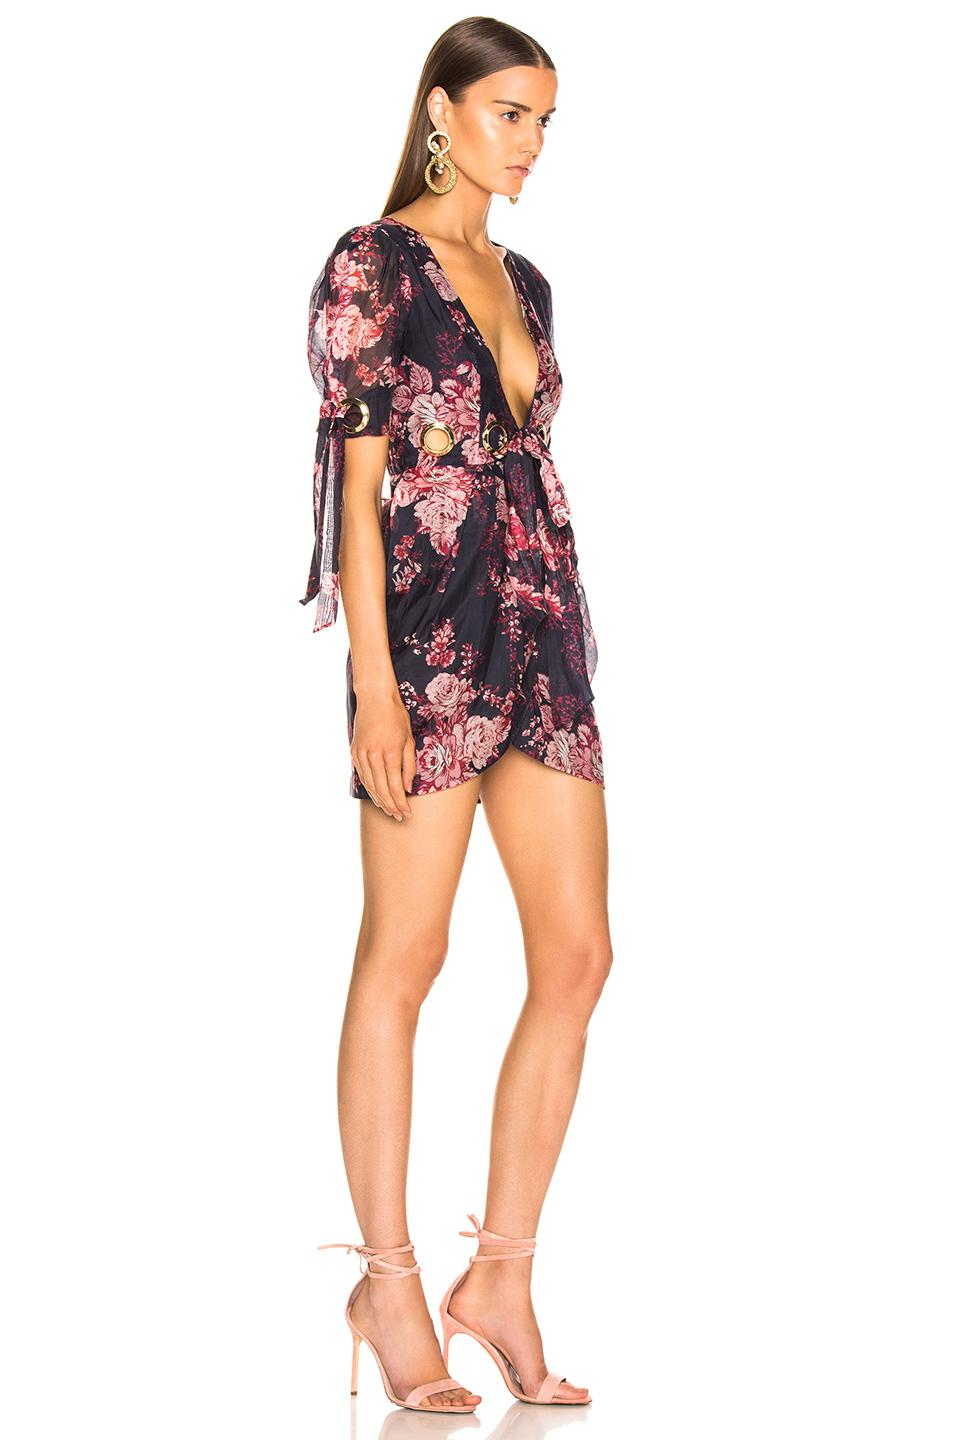 Dress Mccall Mini Alice Lyst Only Everything 1TlKFJc